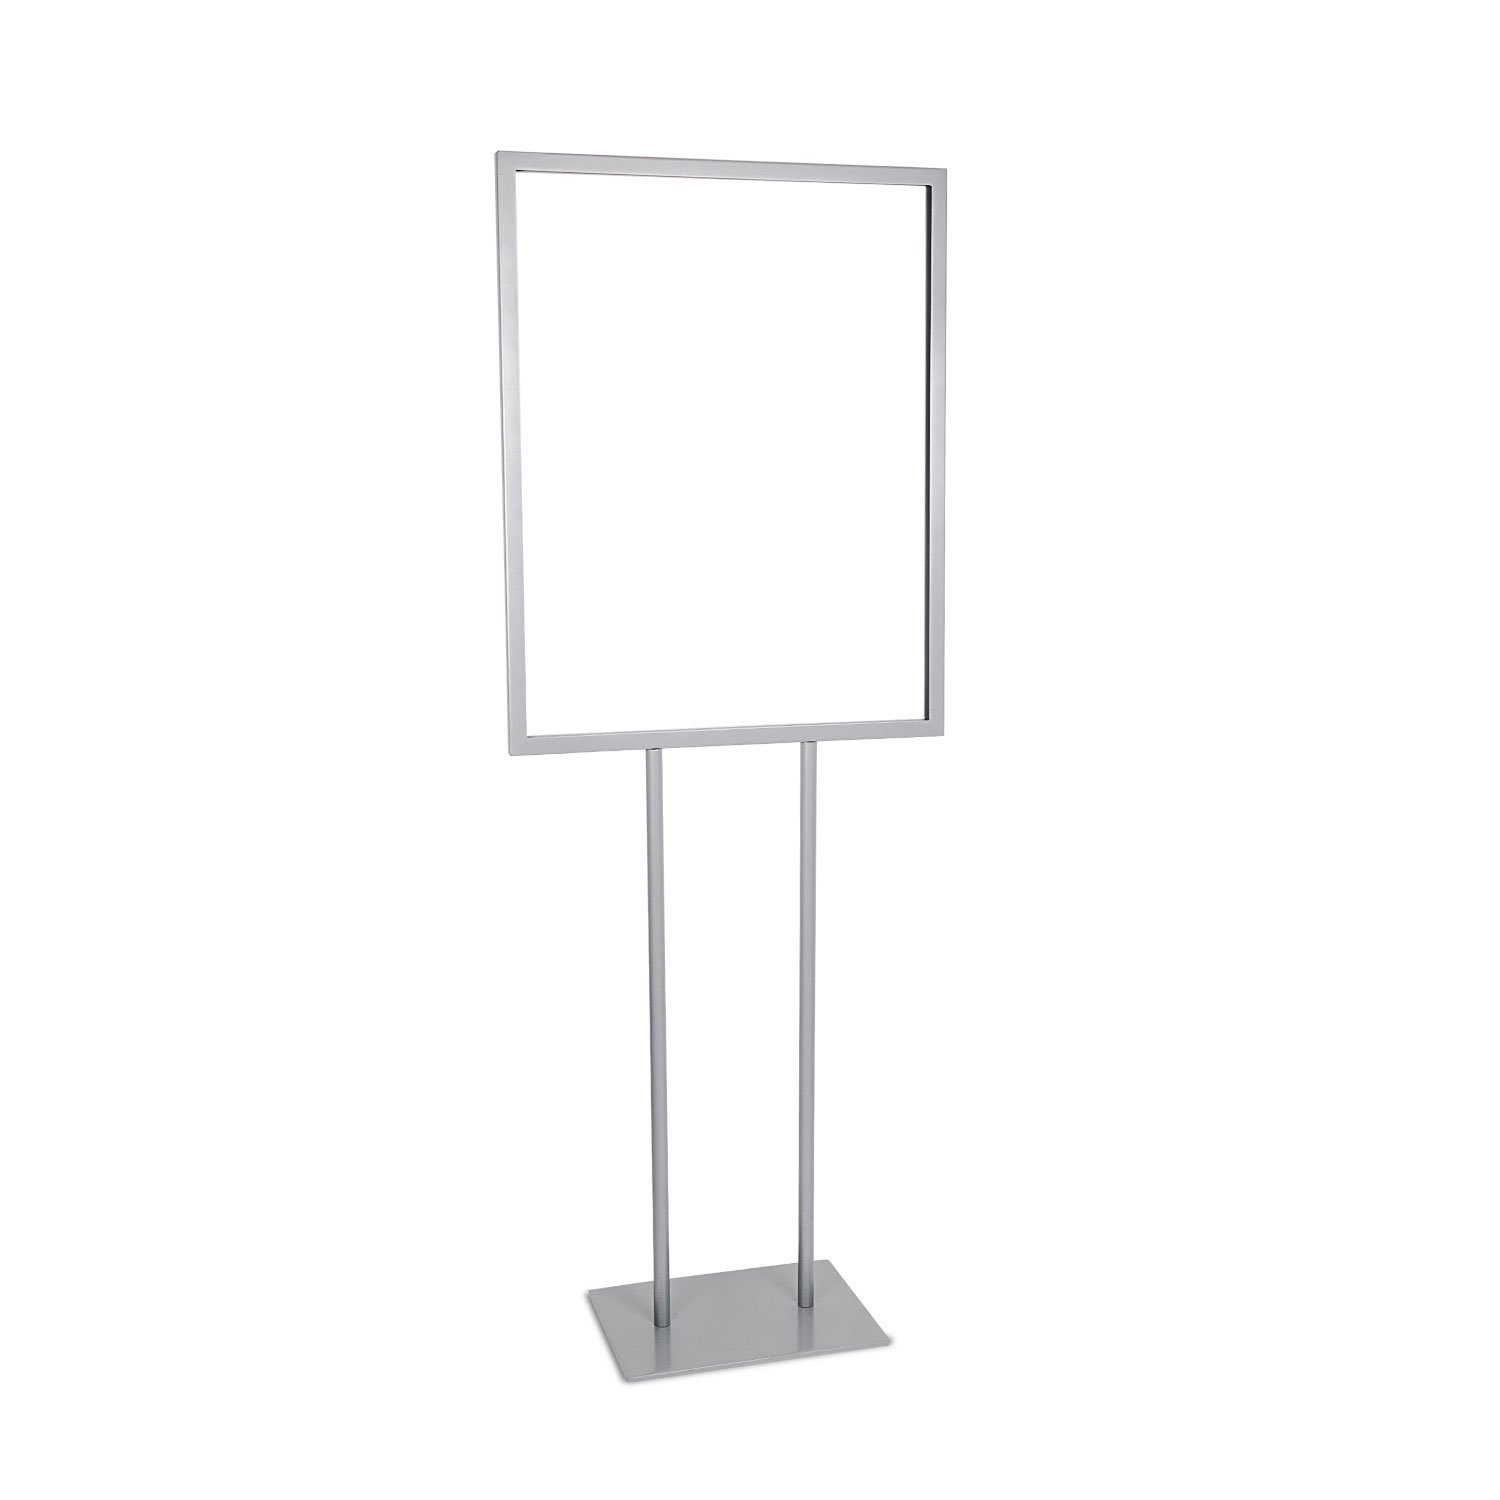 Source One Deluxe 22 x 28, 11 x 17, & 8 1/2 x 11 Inch Floor Standing Sign Holders Multiple Colors Black, White & Gray Heavy Duty Weighted Metal (11 X 17 Inch, Gray)